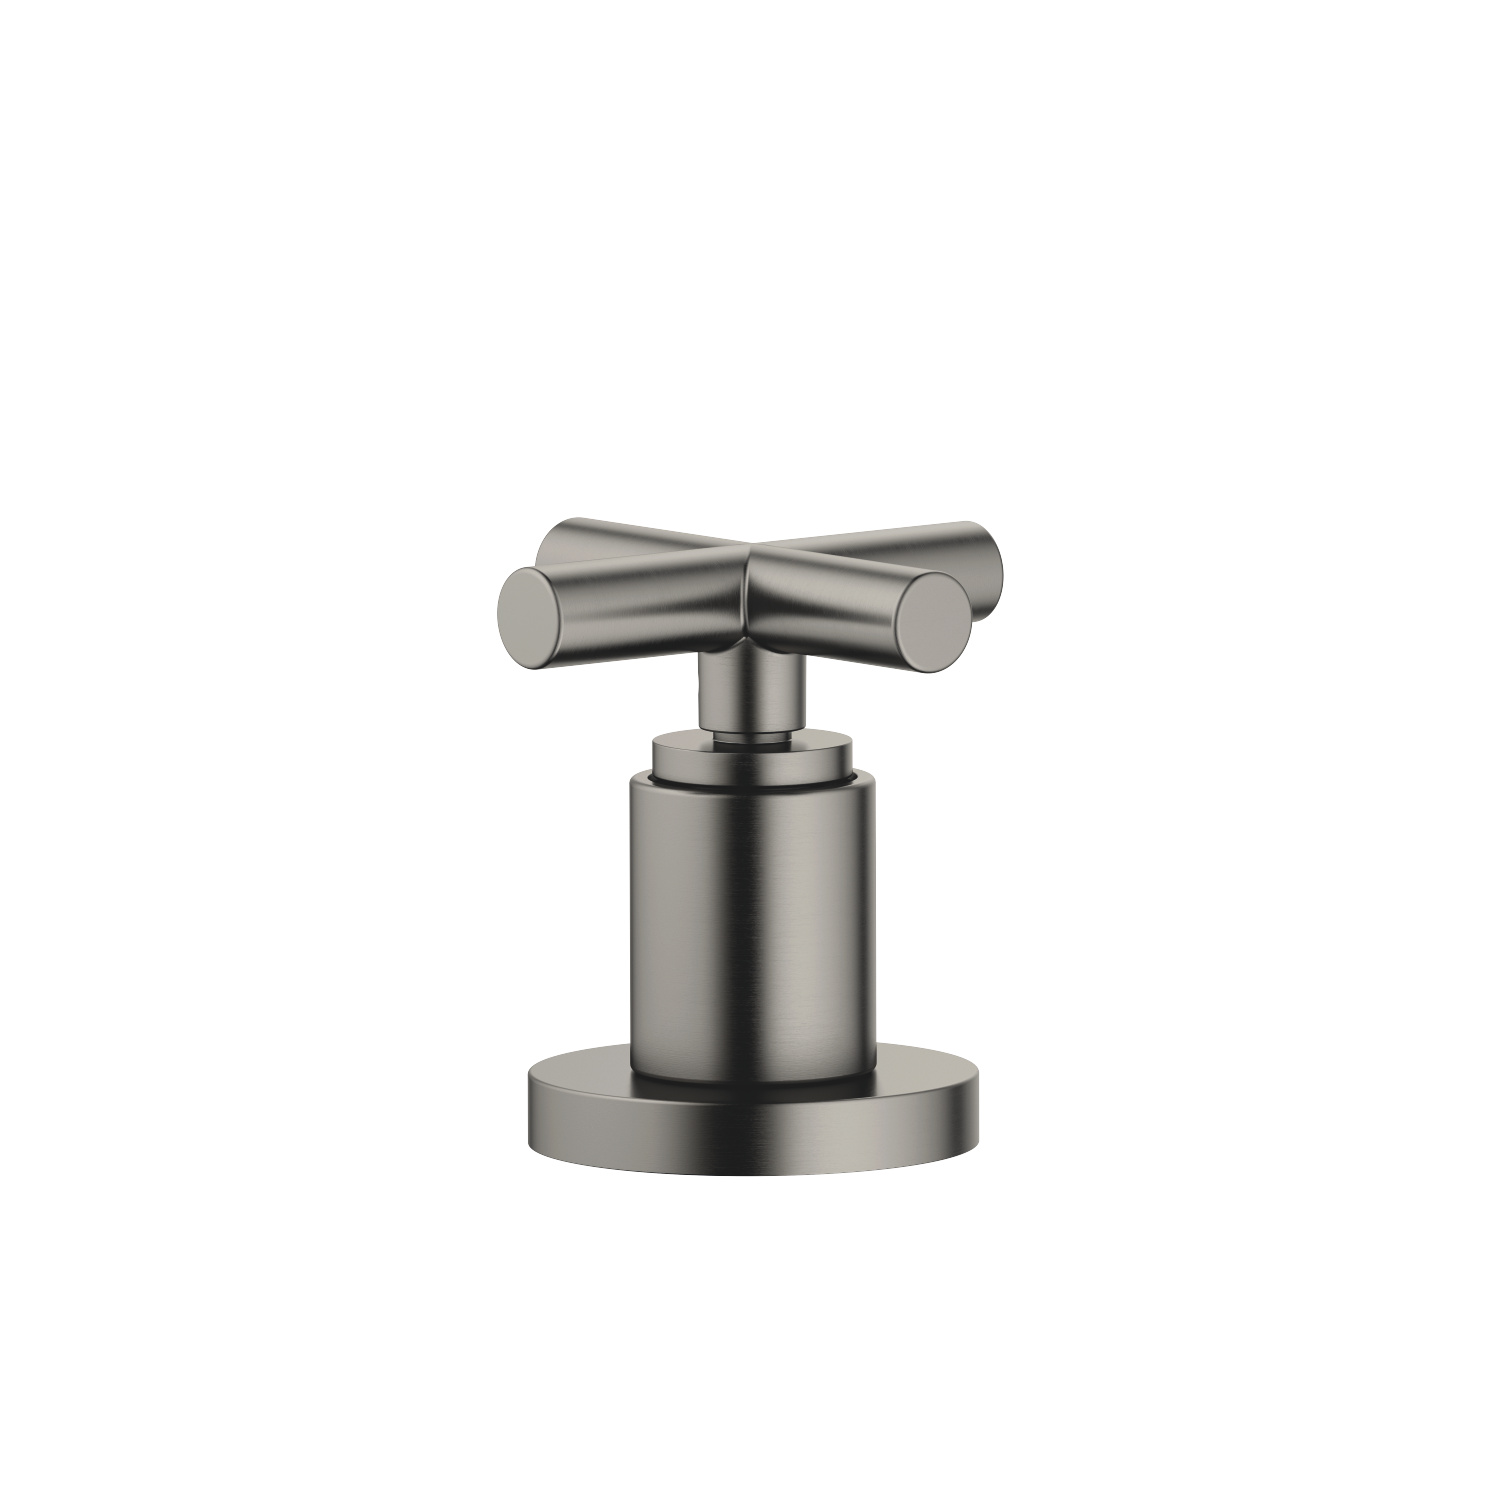 Two-way diverter for bath rim or tile edge installation - Dark Platinum matt - 29 140 892-99